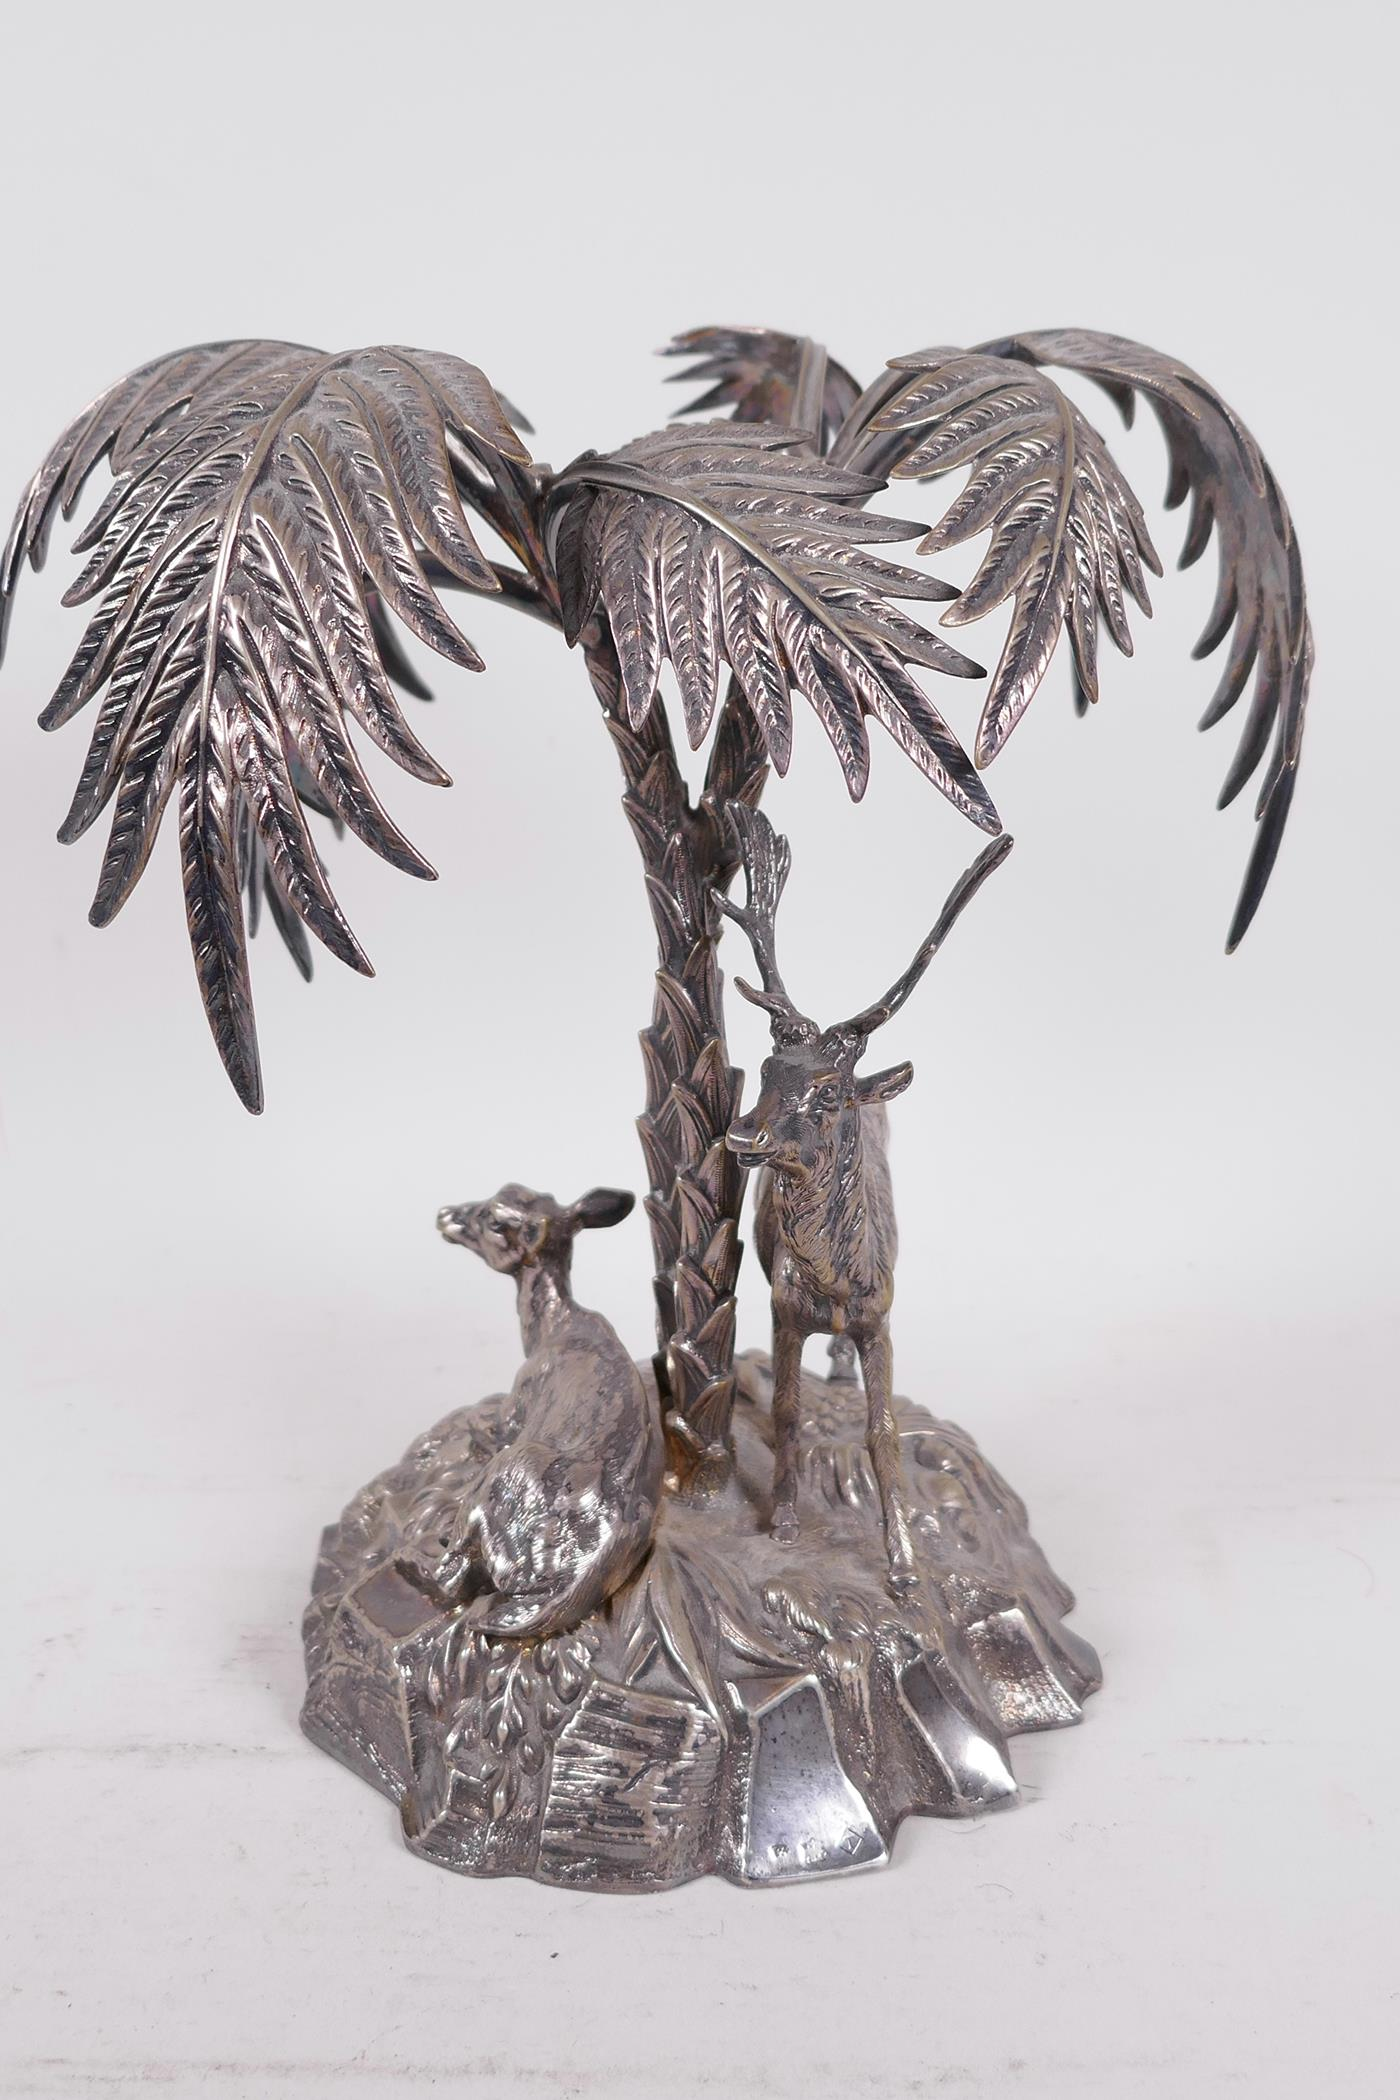 A C19th silver plated table centrepiece formed as deer under a palm tree by Thomas Bradbury and - Image 4 of 6